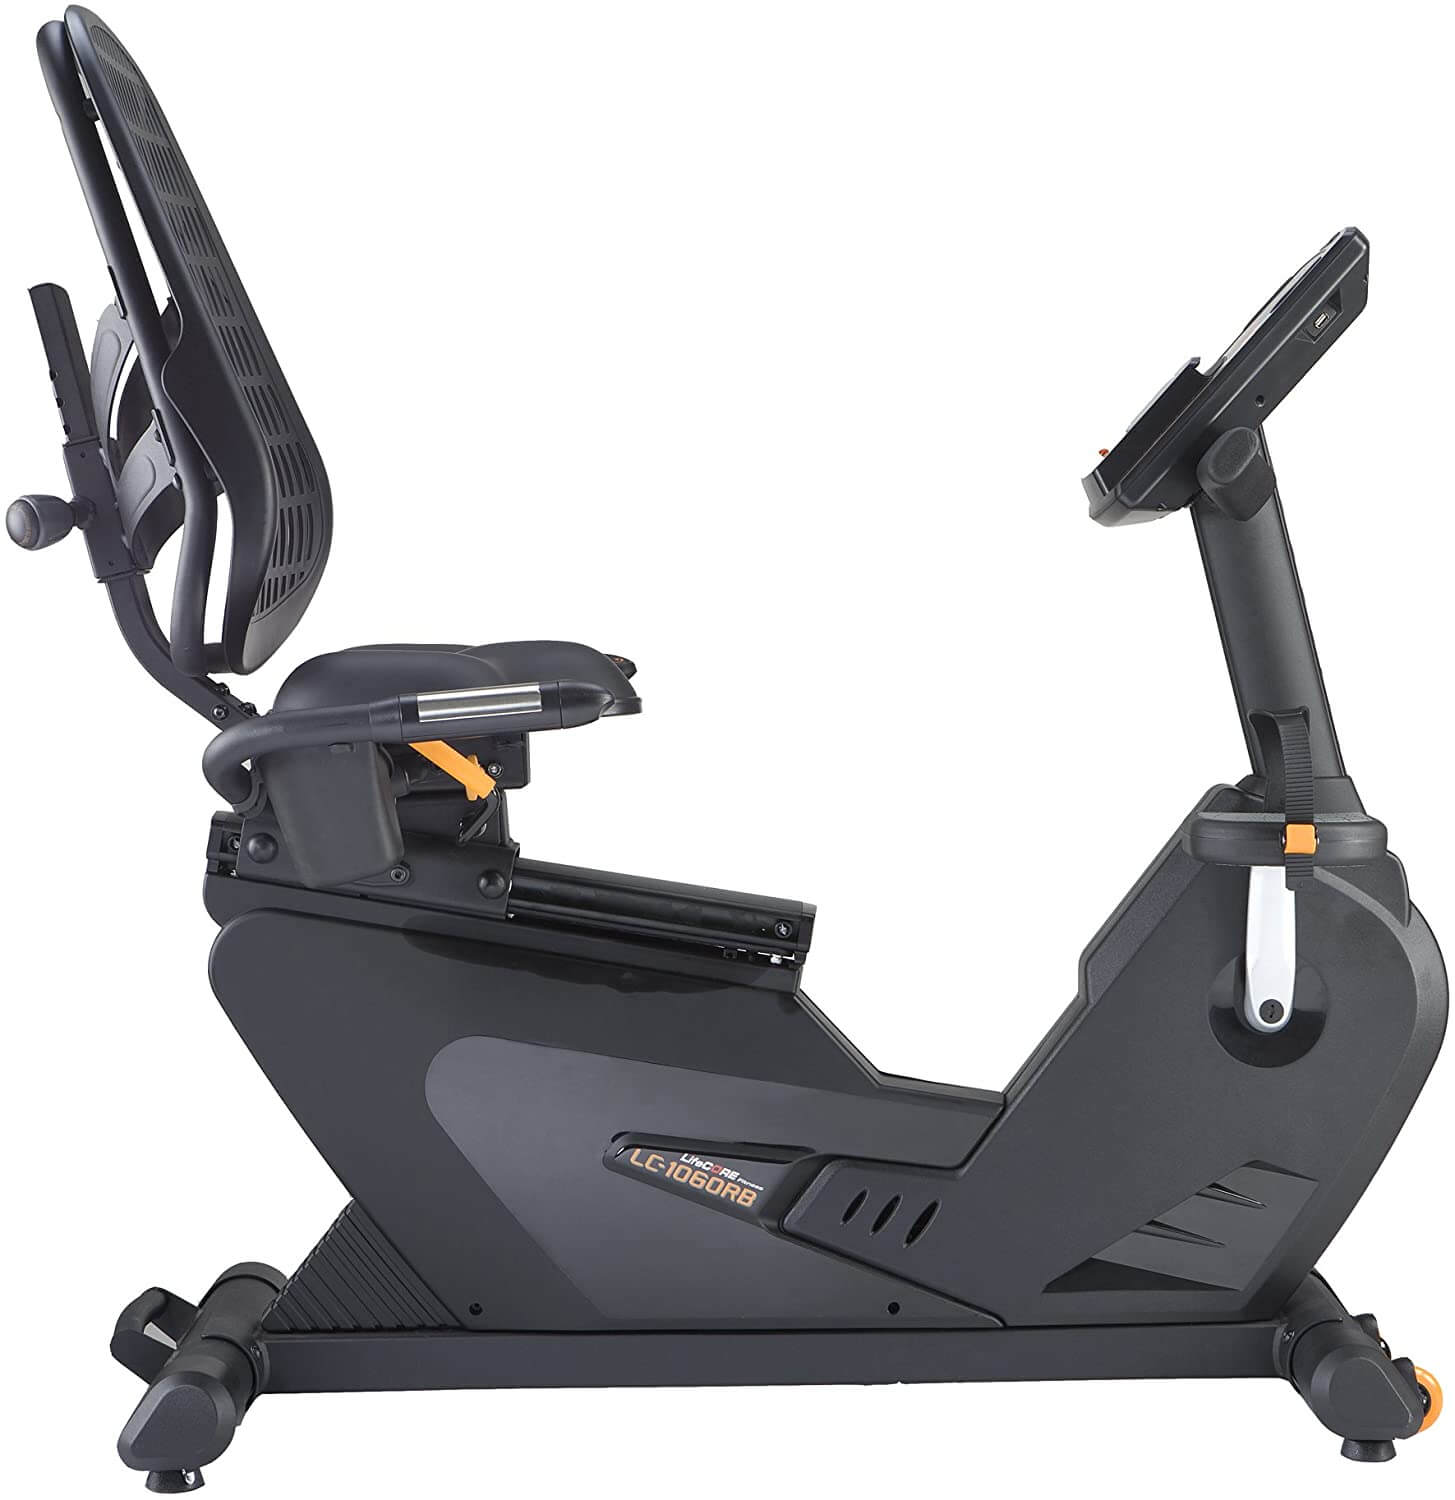 LifeCore Fitness 1060 RB Recumbent Exercise Bike review